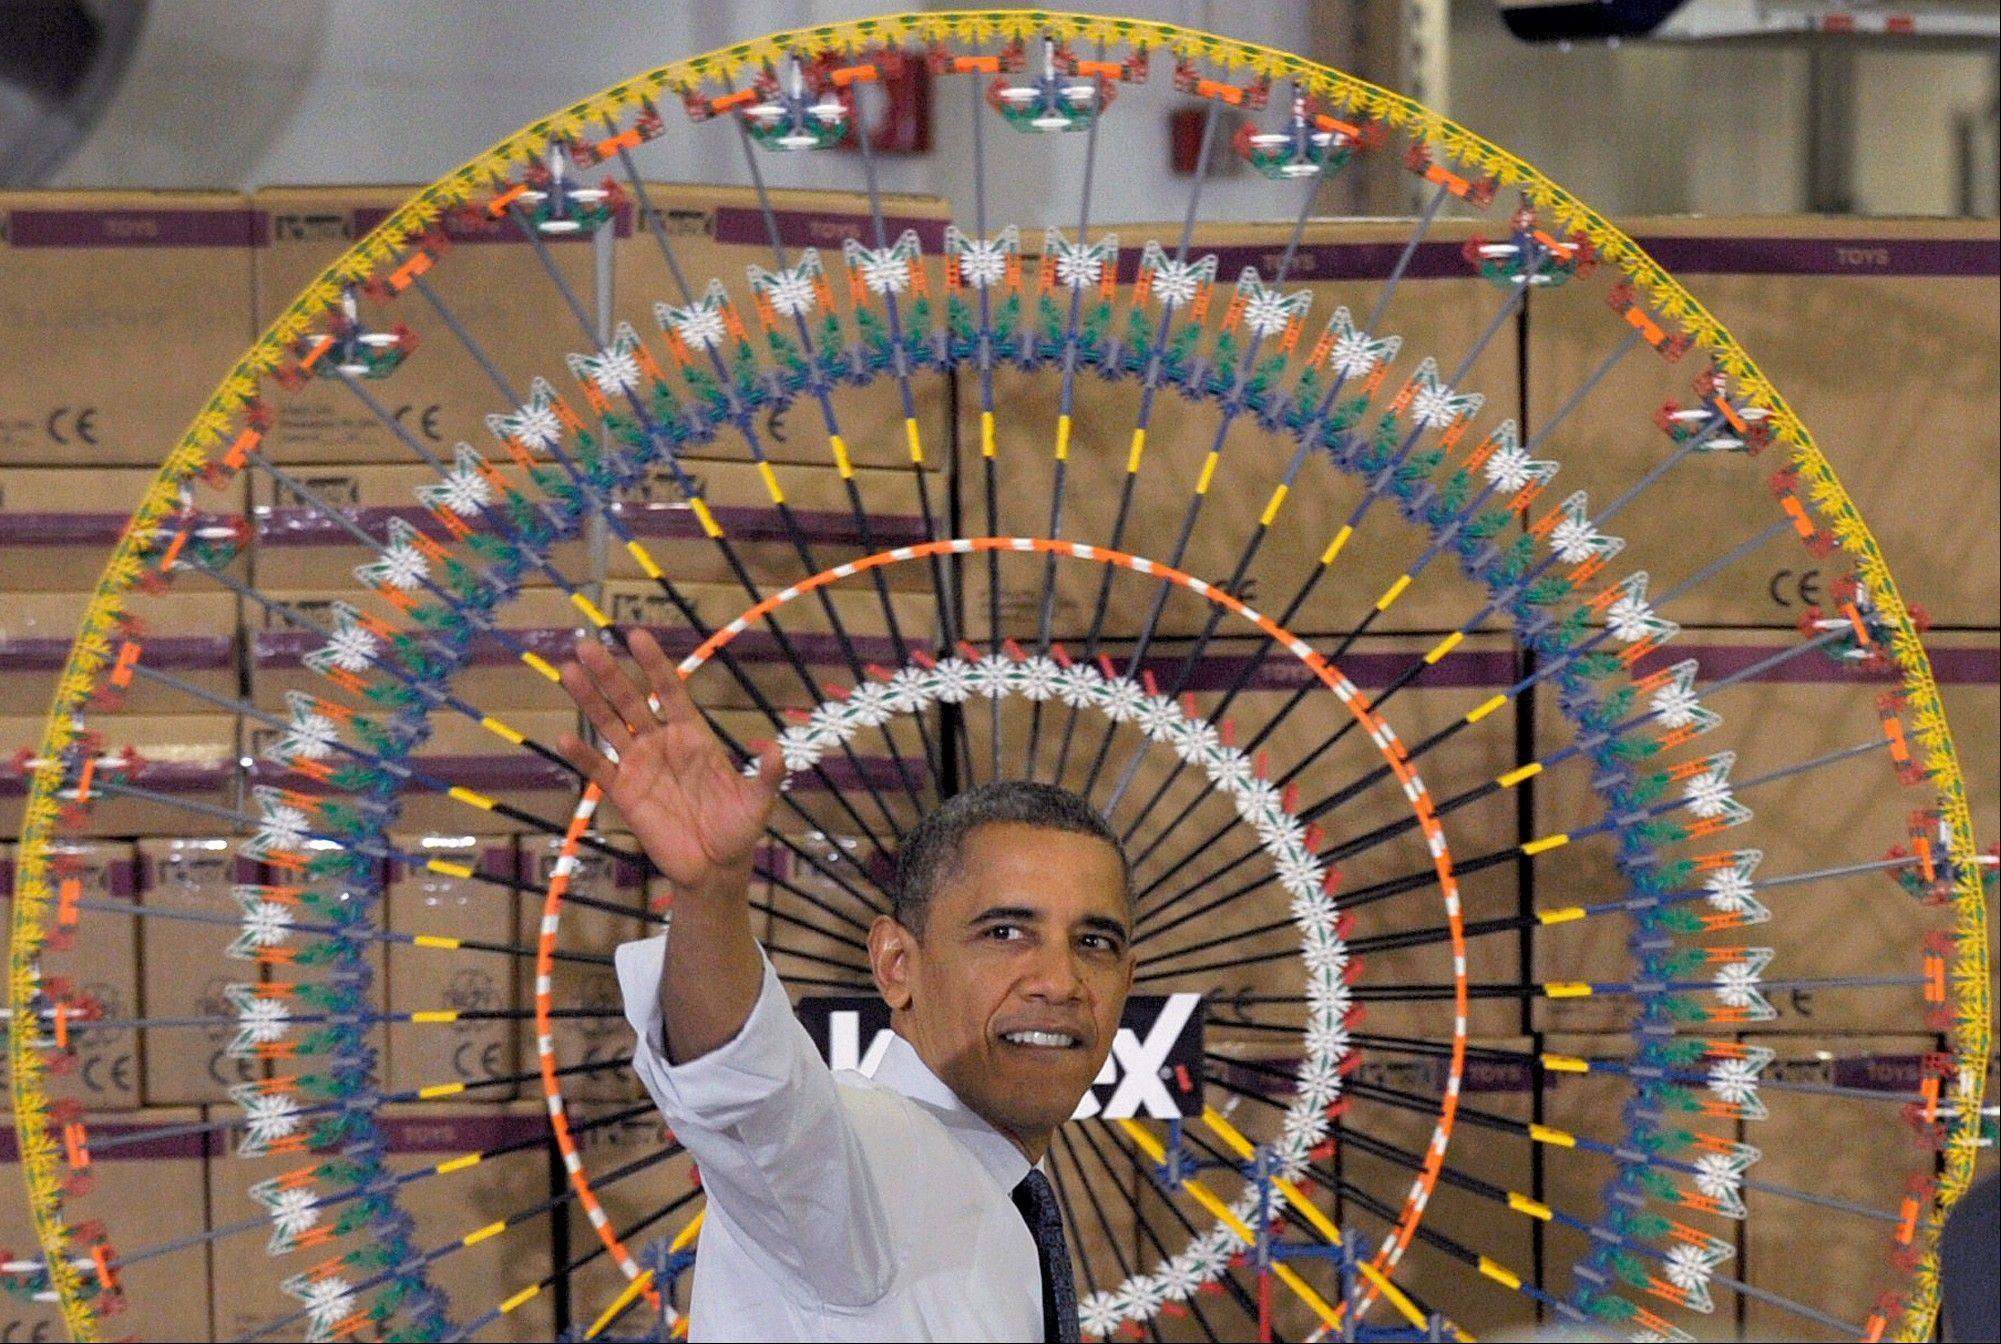 President Barack Obama waves after speaking Friday at the Rodon Group, which manufactures over 95% of the parts for K�NEX Brands toys, in Hatfield, Pa. The visit comes as the White House continues a week of public outreach efforts, while also attempting to negotiate a deal with congressional leaders.